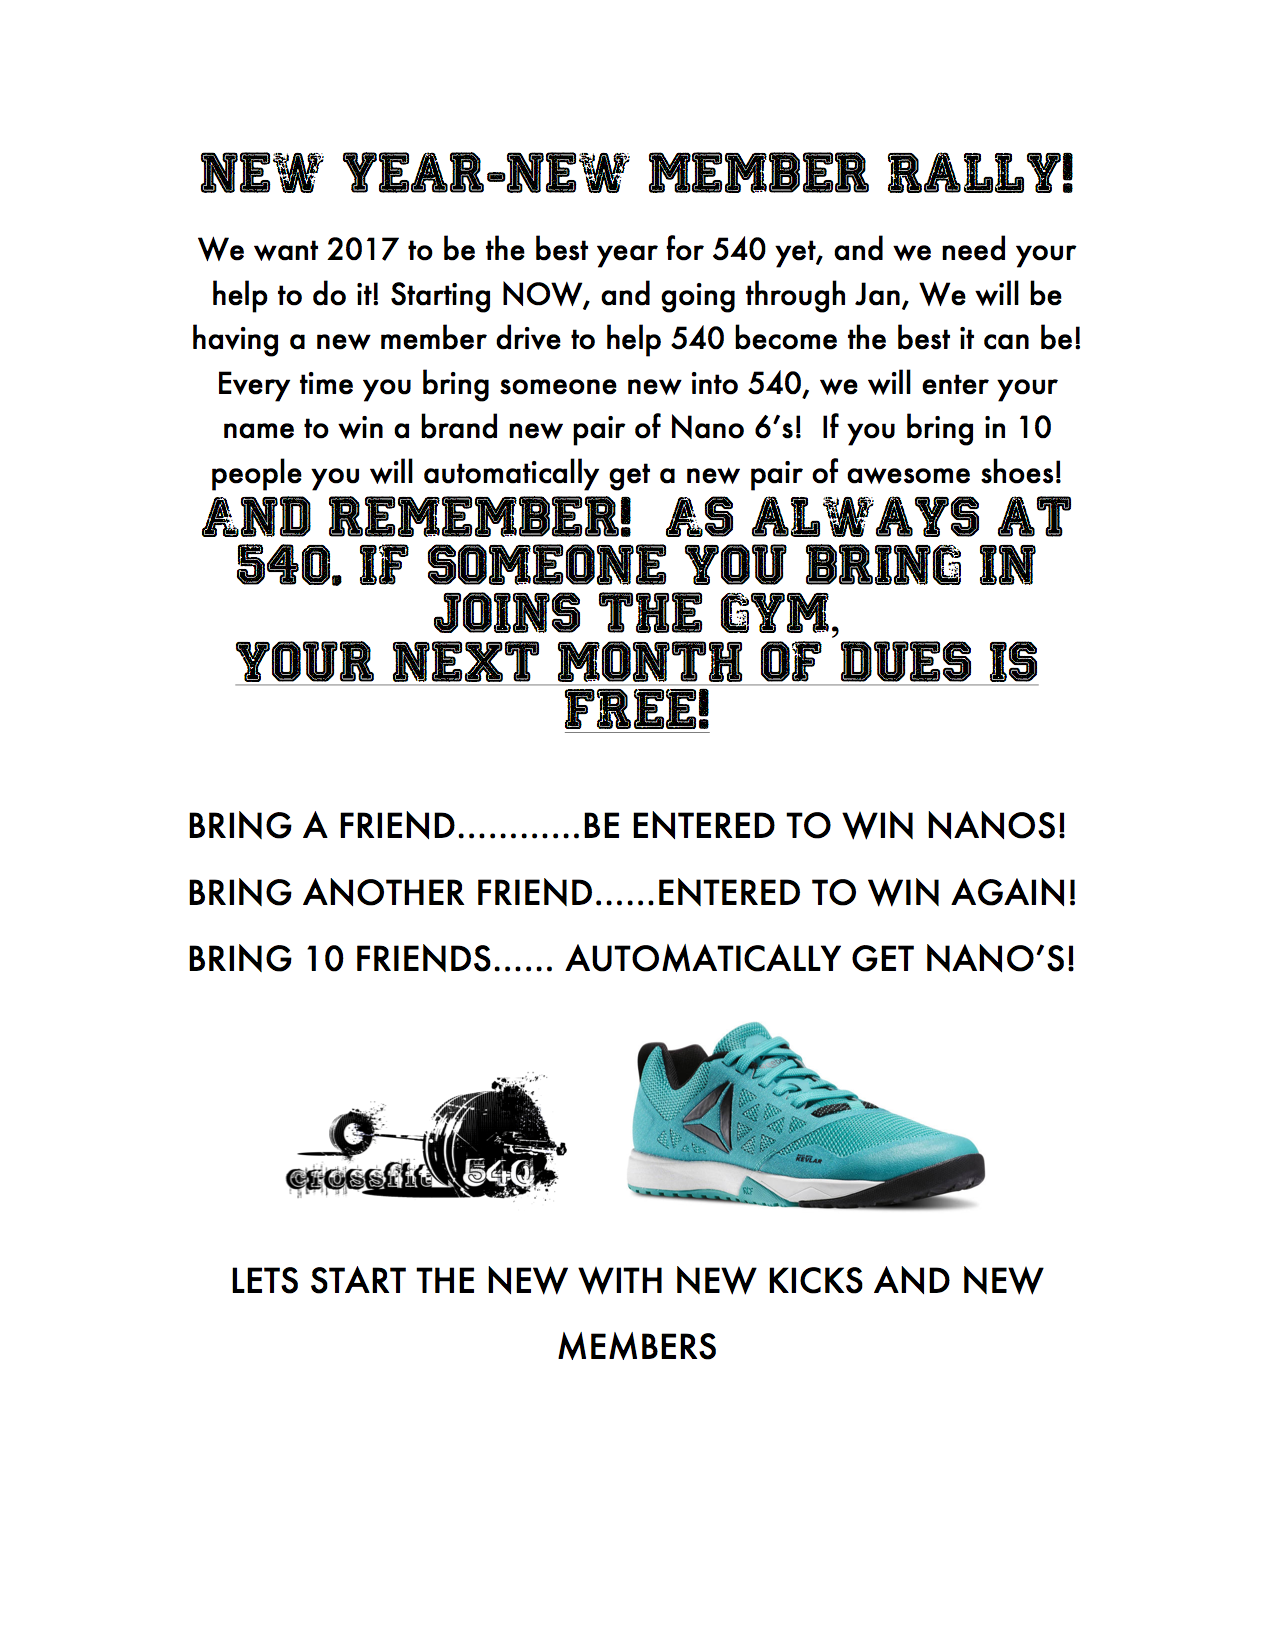 Don't forget about the best new way to get new Nano's and help out the gym at the same time!